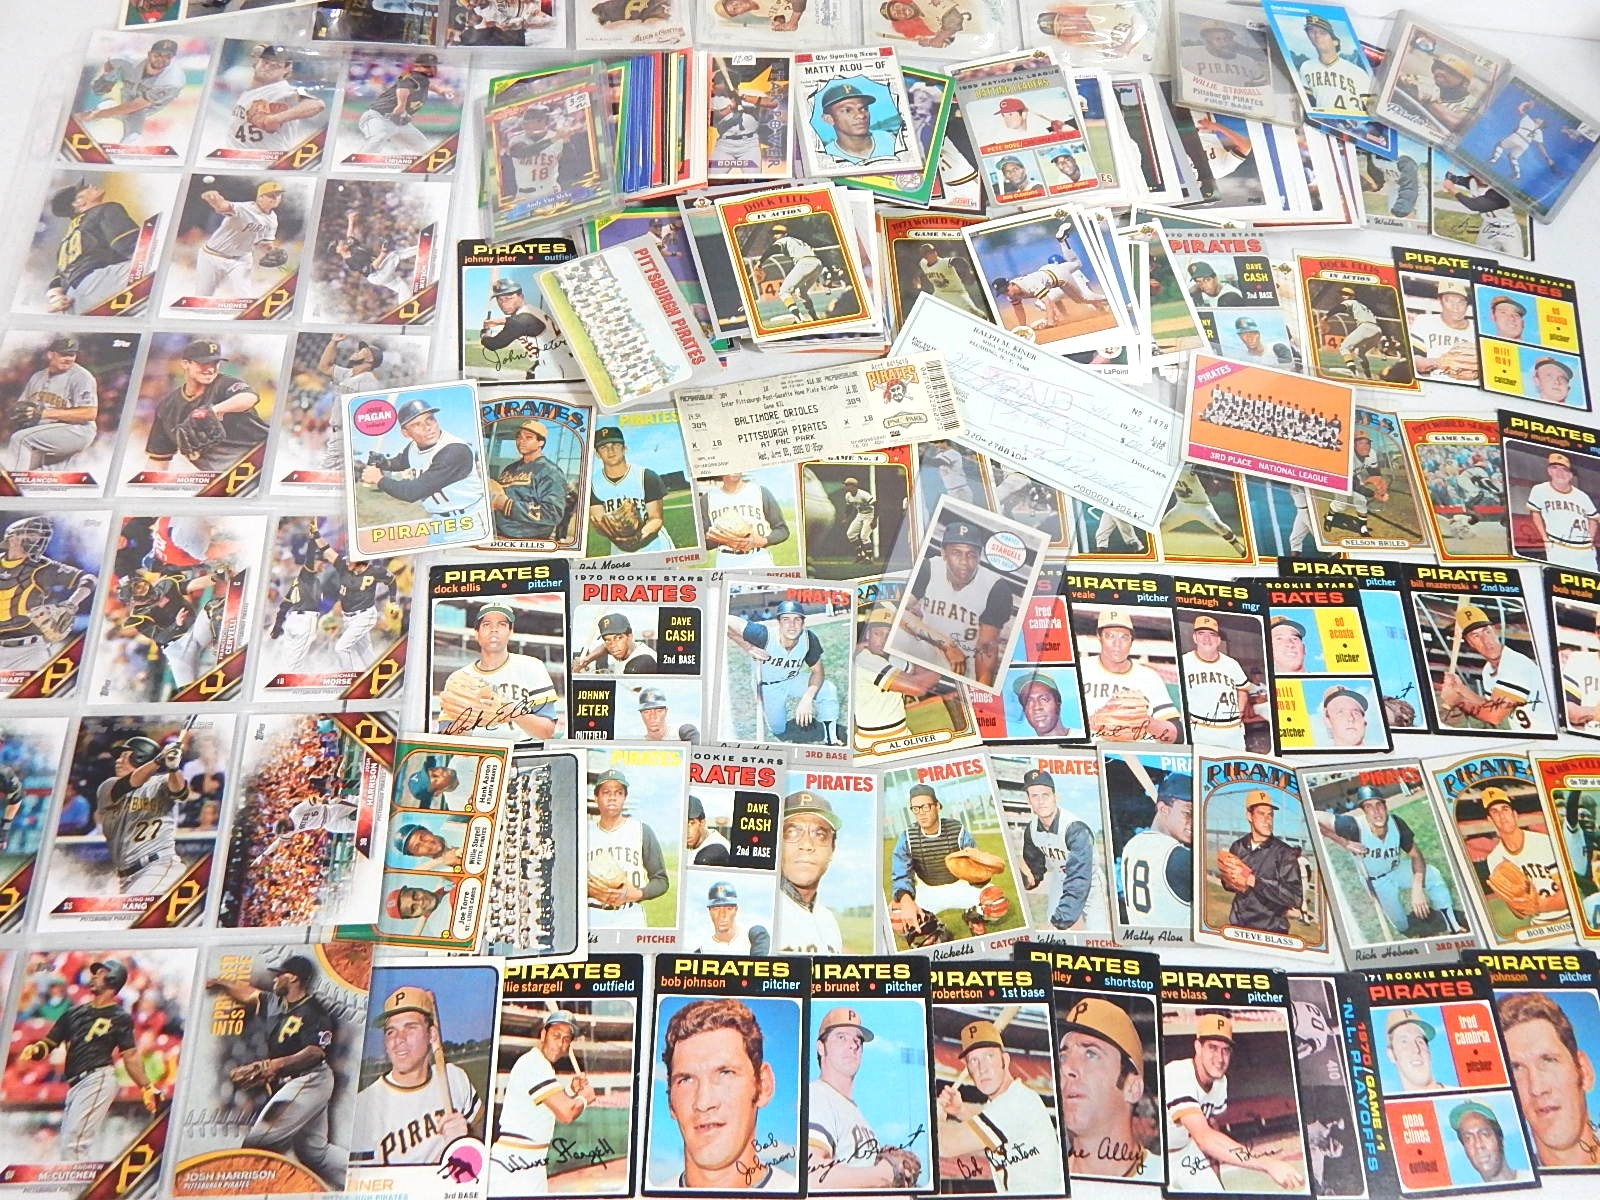 Pittsburgh Pirates Card Lot from 1960s to 2000s - Over 300 Card Count